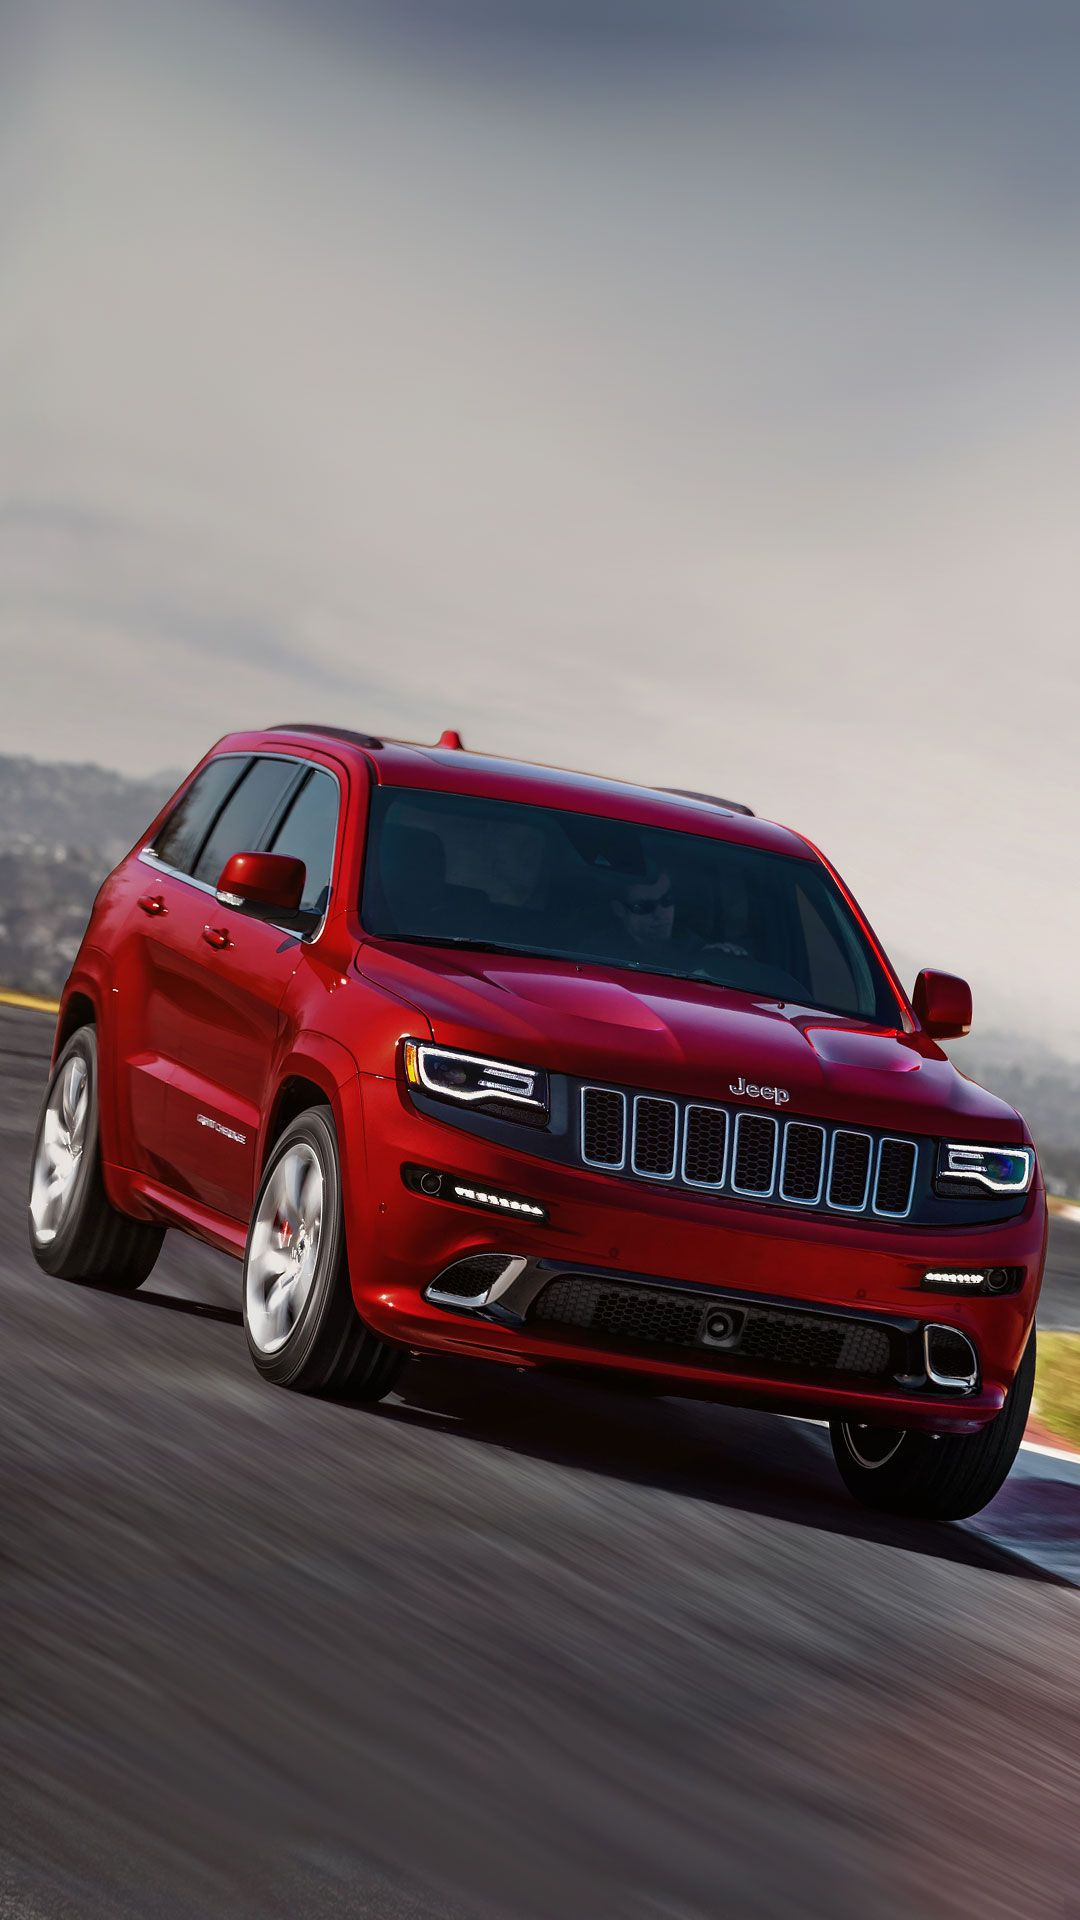 2017 Jeep Grand Cherokee Wallpaper IPhone 6 Plus